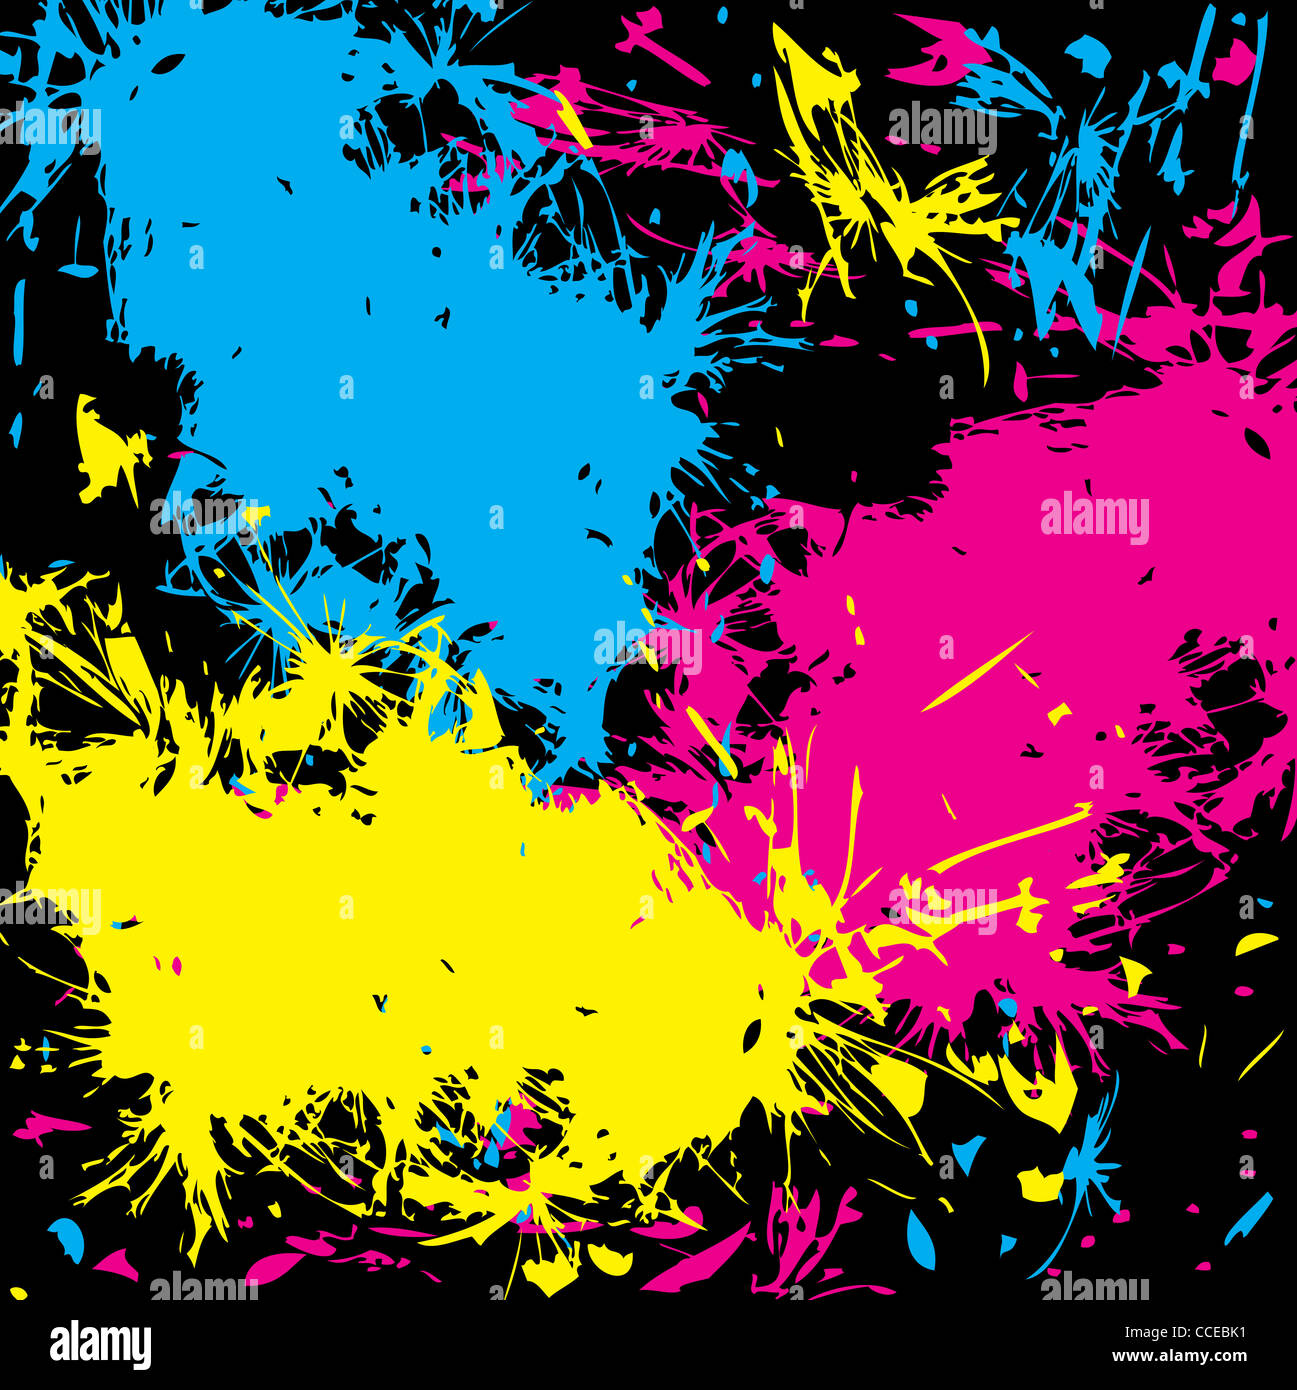 the abstract grunge cmyk background - Stock Image